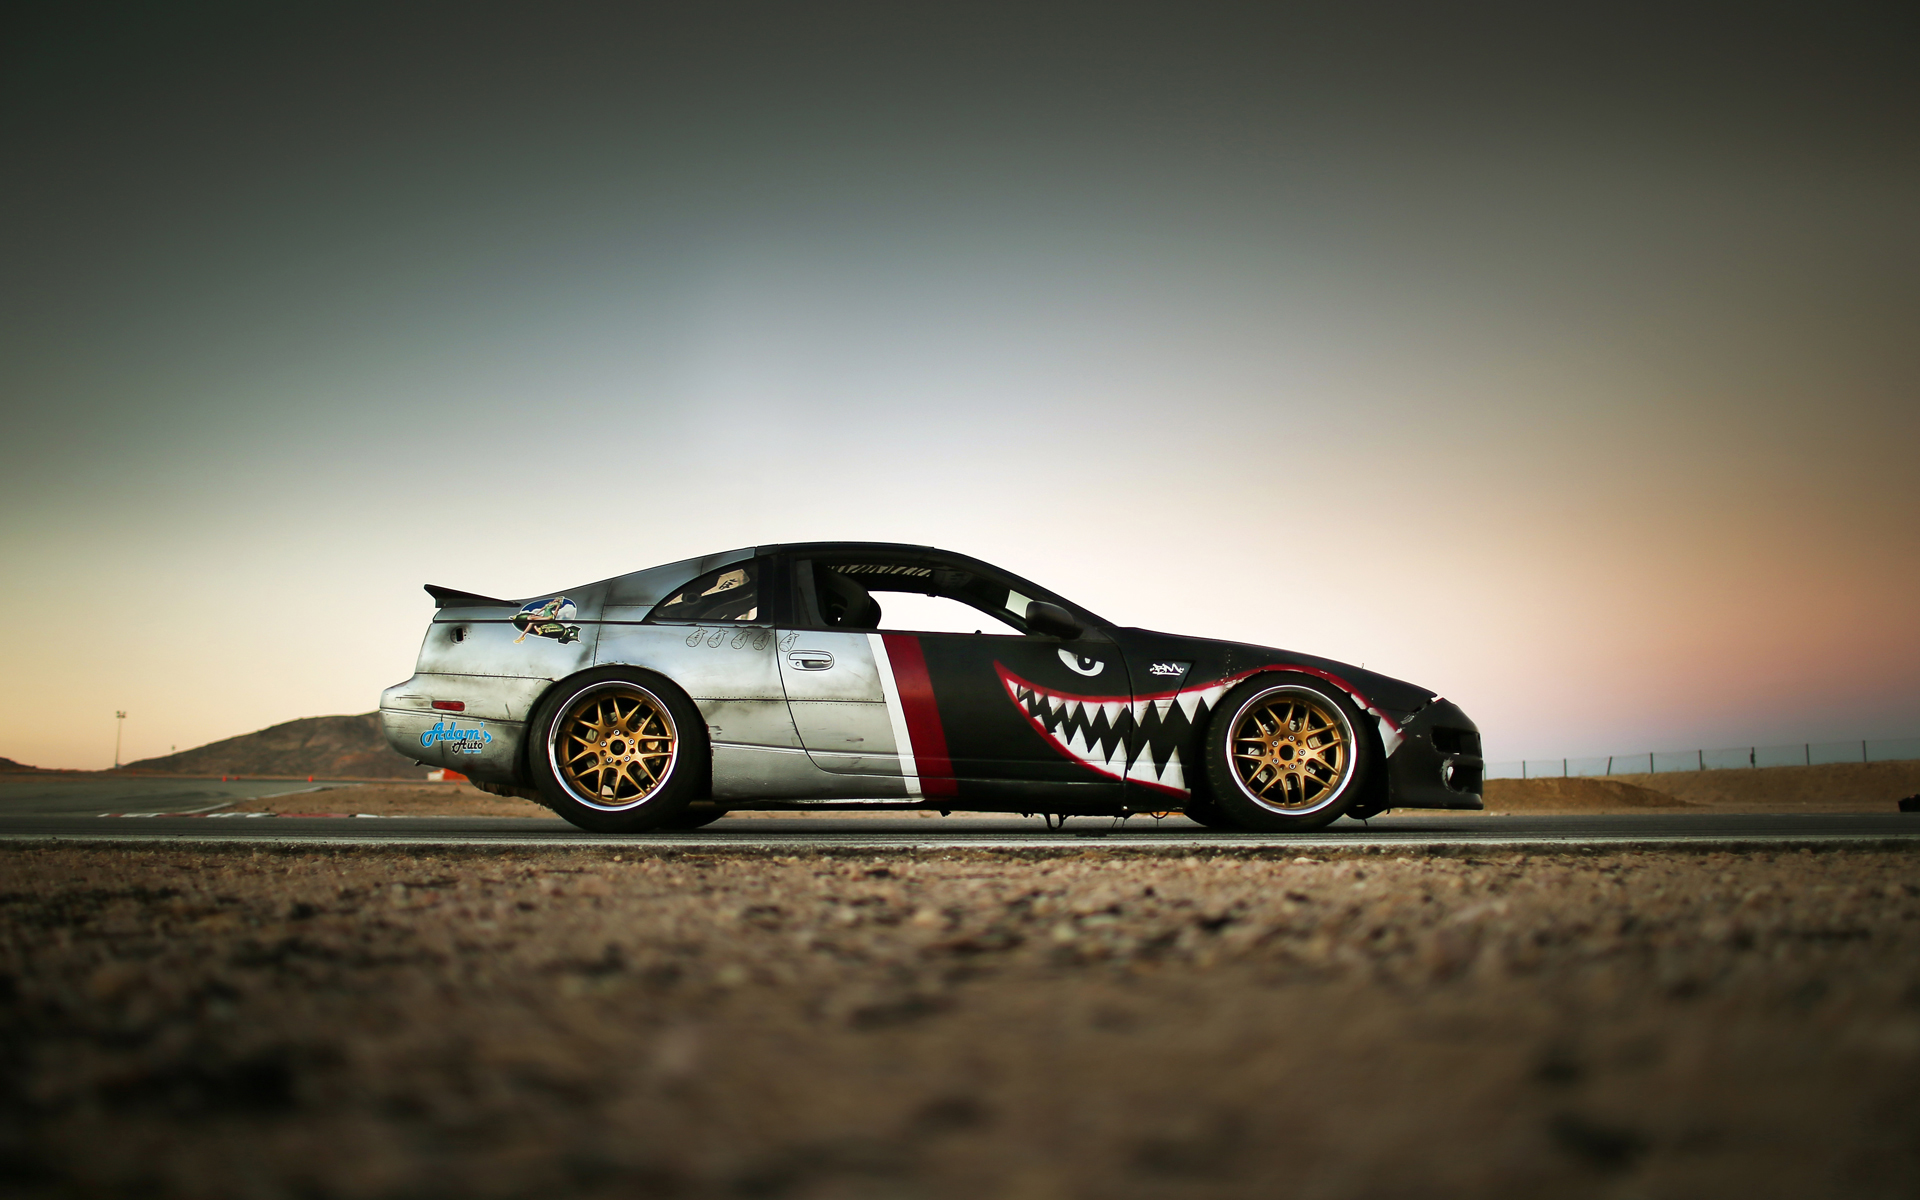 Nissan Drift Car Wallpaper